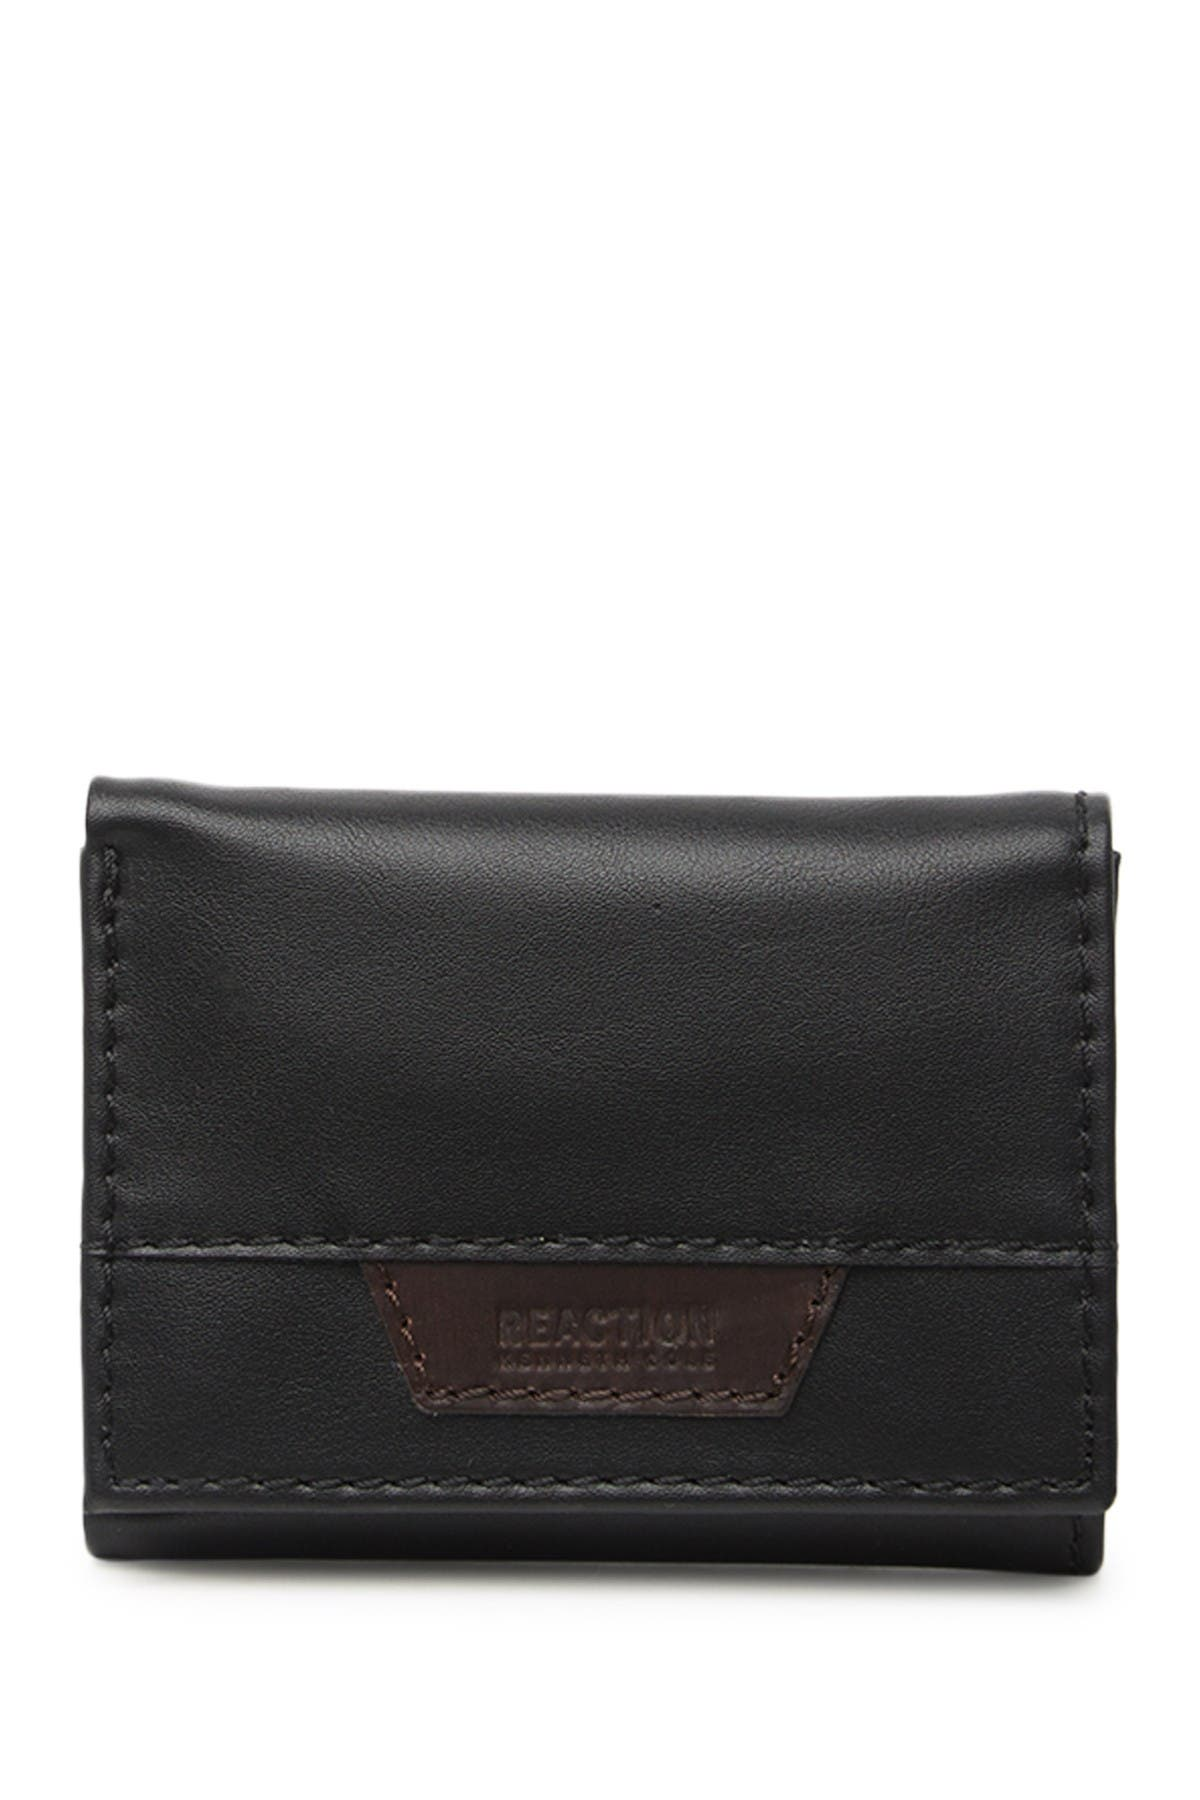 Image of KENNETH COLE Bowery Leather Trifold Wallet